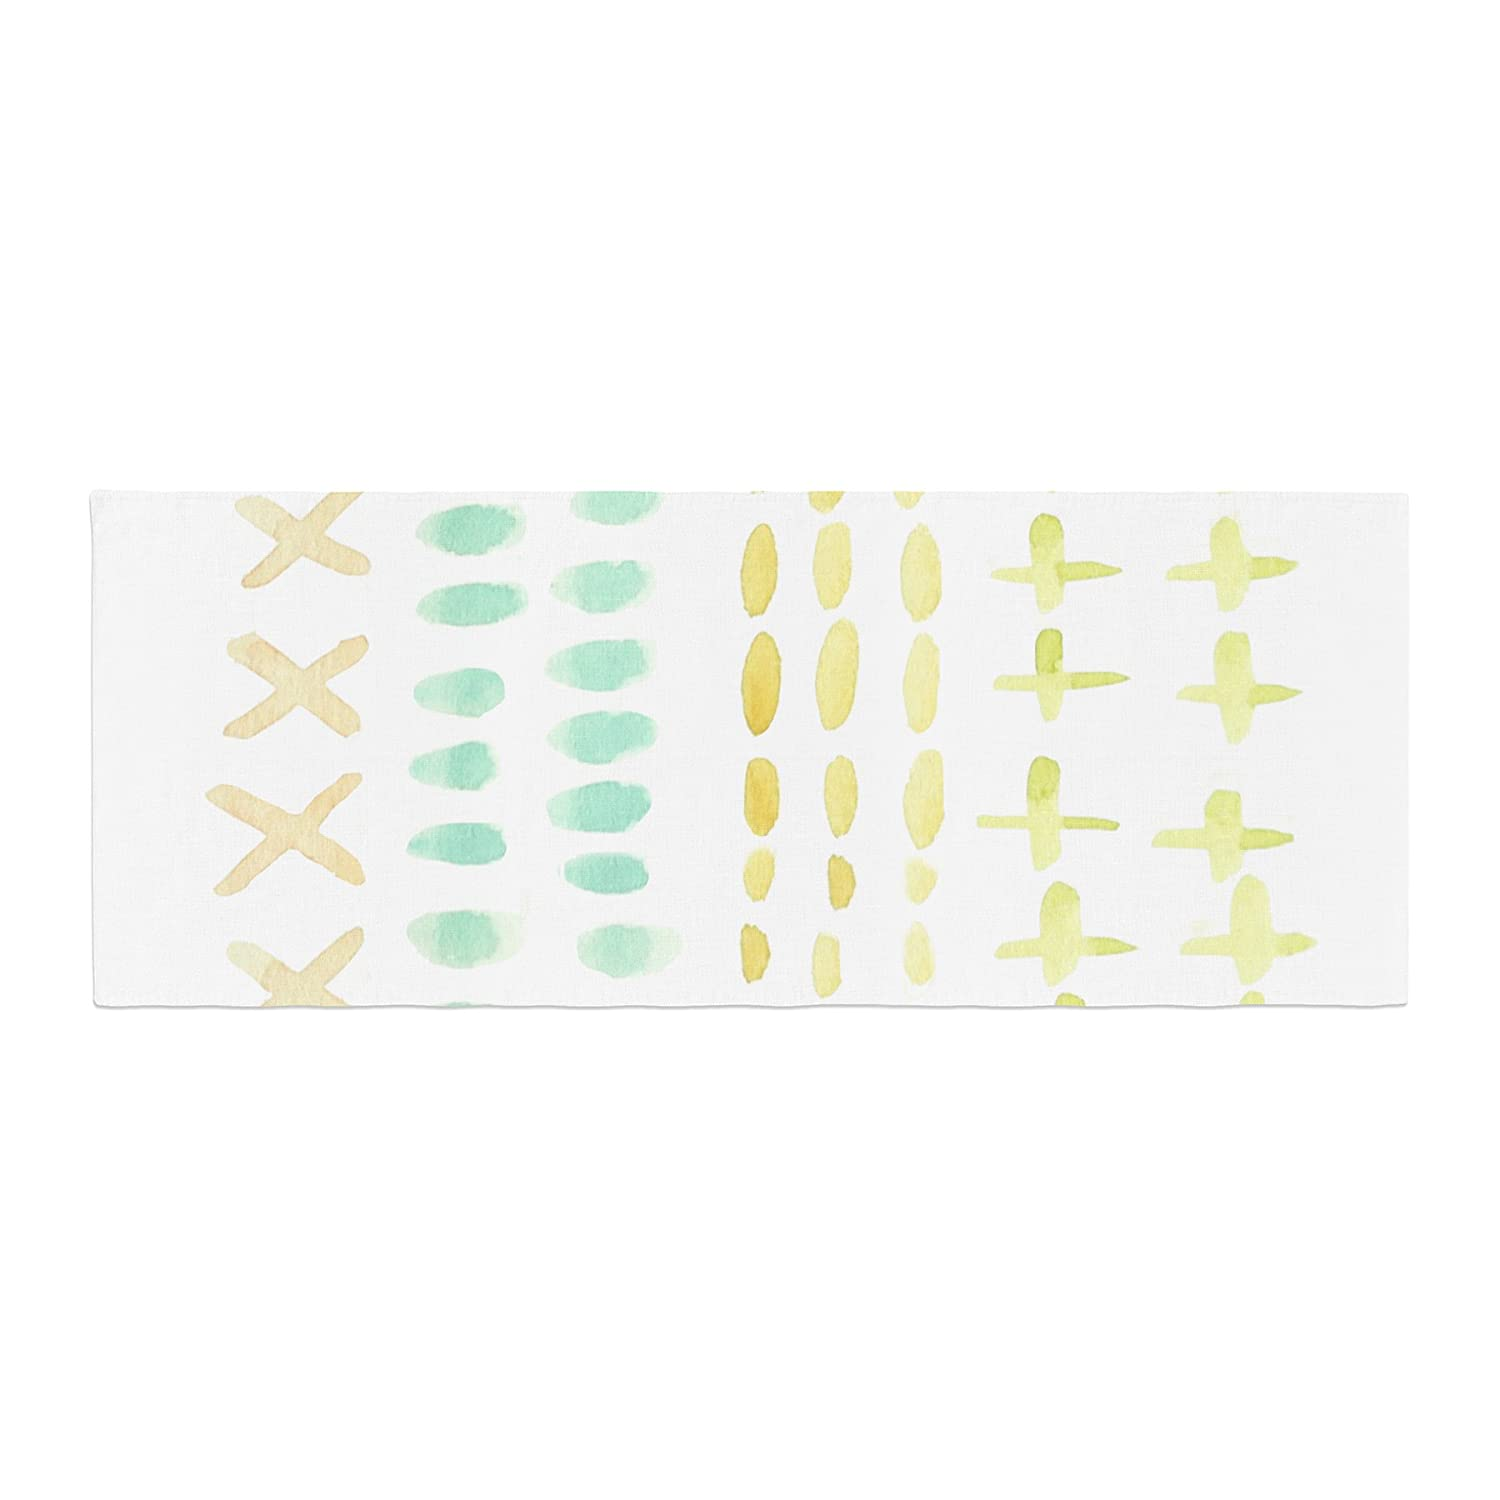 Kess InHouse Jennifer Rizzo Dots and Dashes Teal Yellow Bed Runner, 34' x 86'